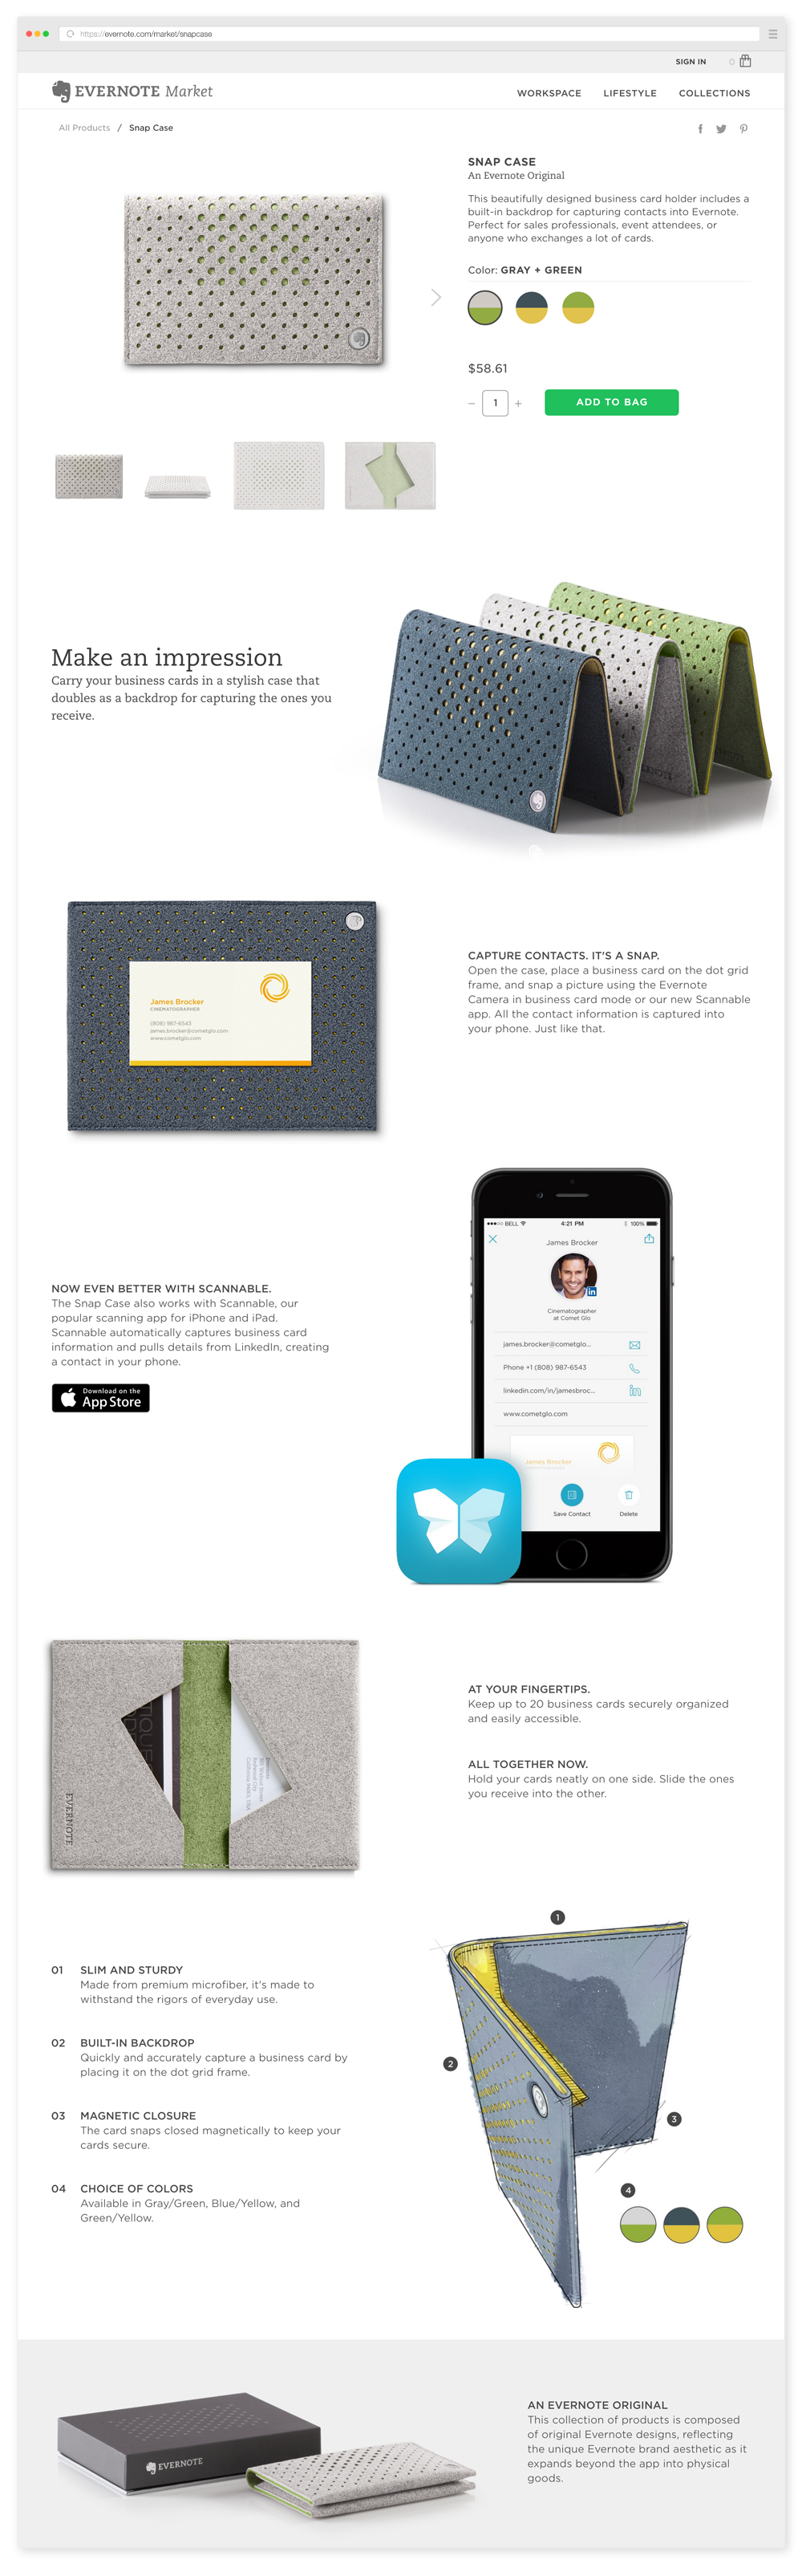 Using Evernote For Business Cards Choice Image - Business Card Template